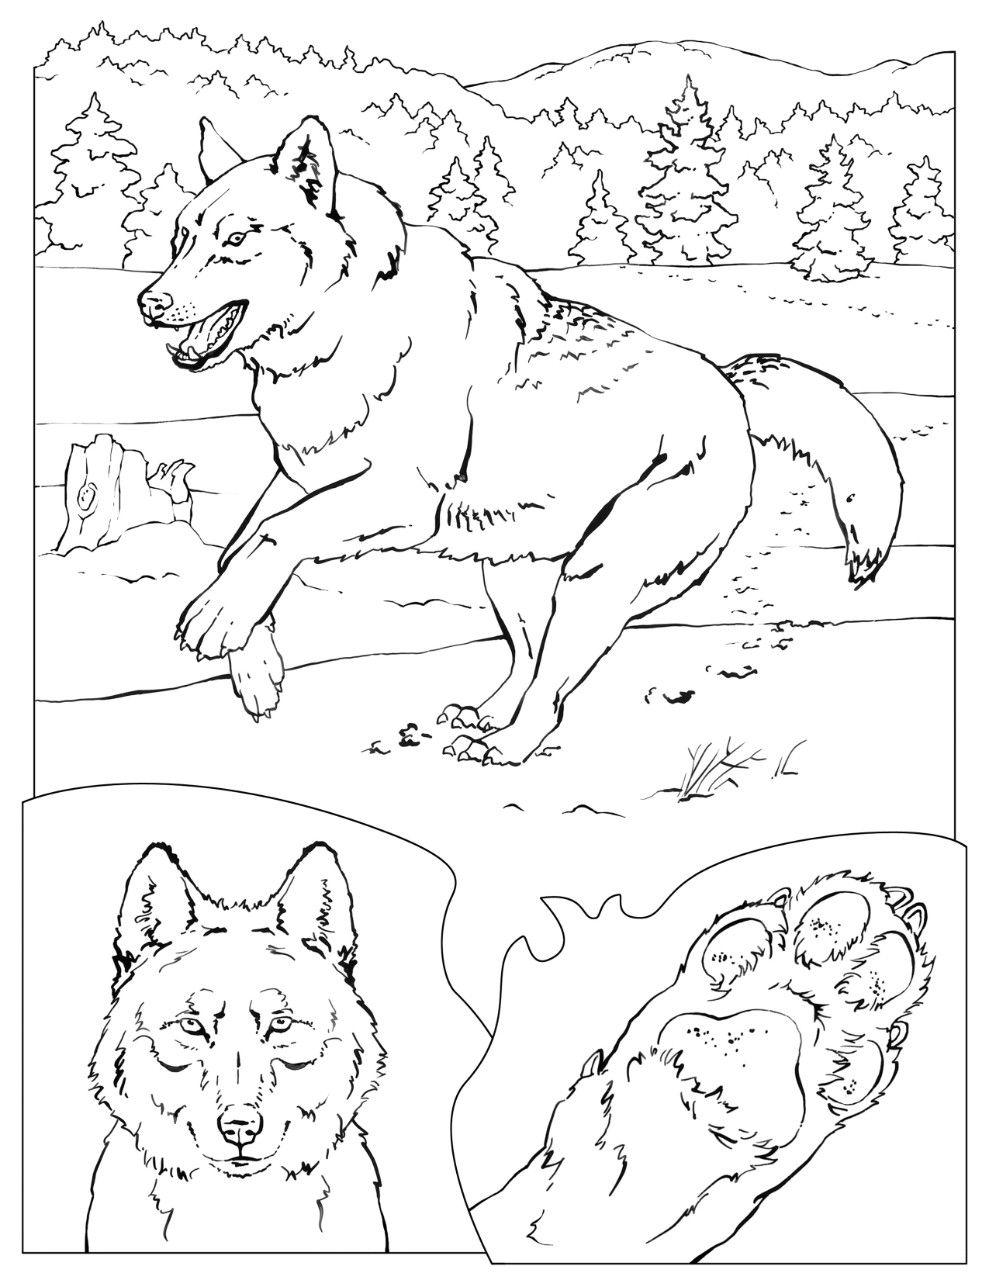 Coloring Book Animals A To I Coloring Pages Nature Coloring Books Horse Coloring Pages